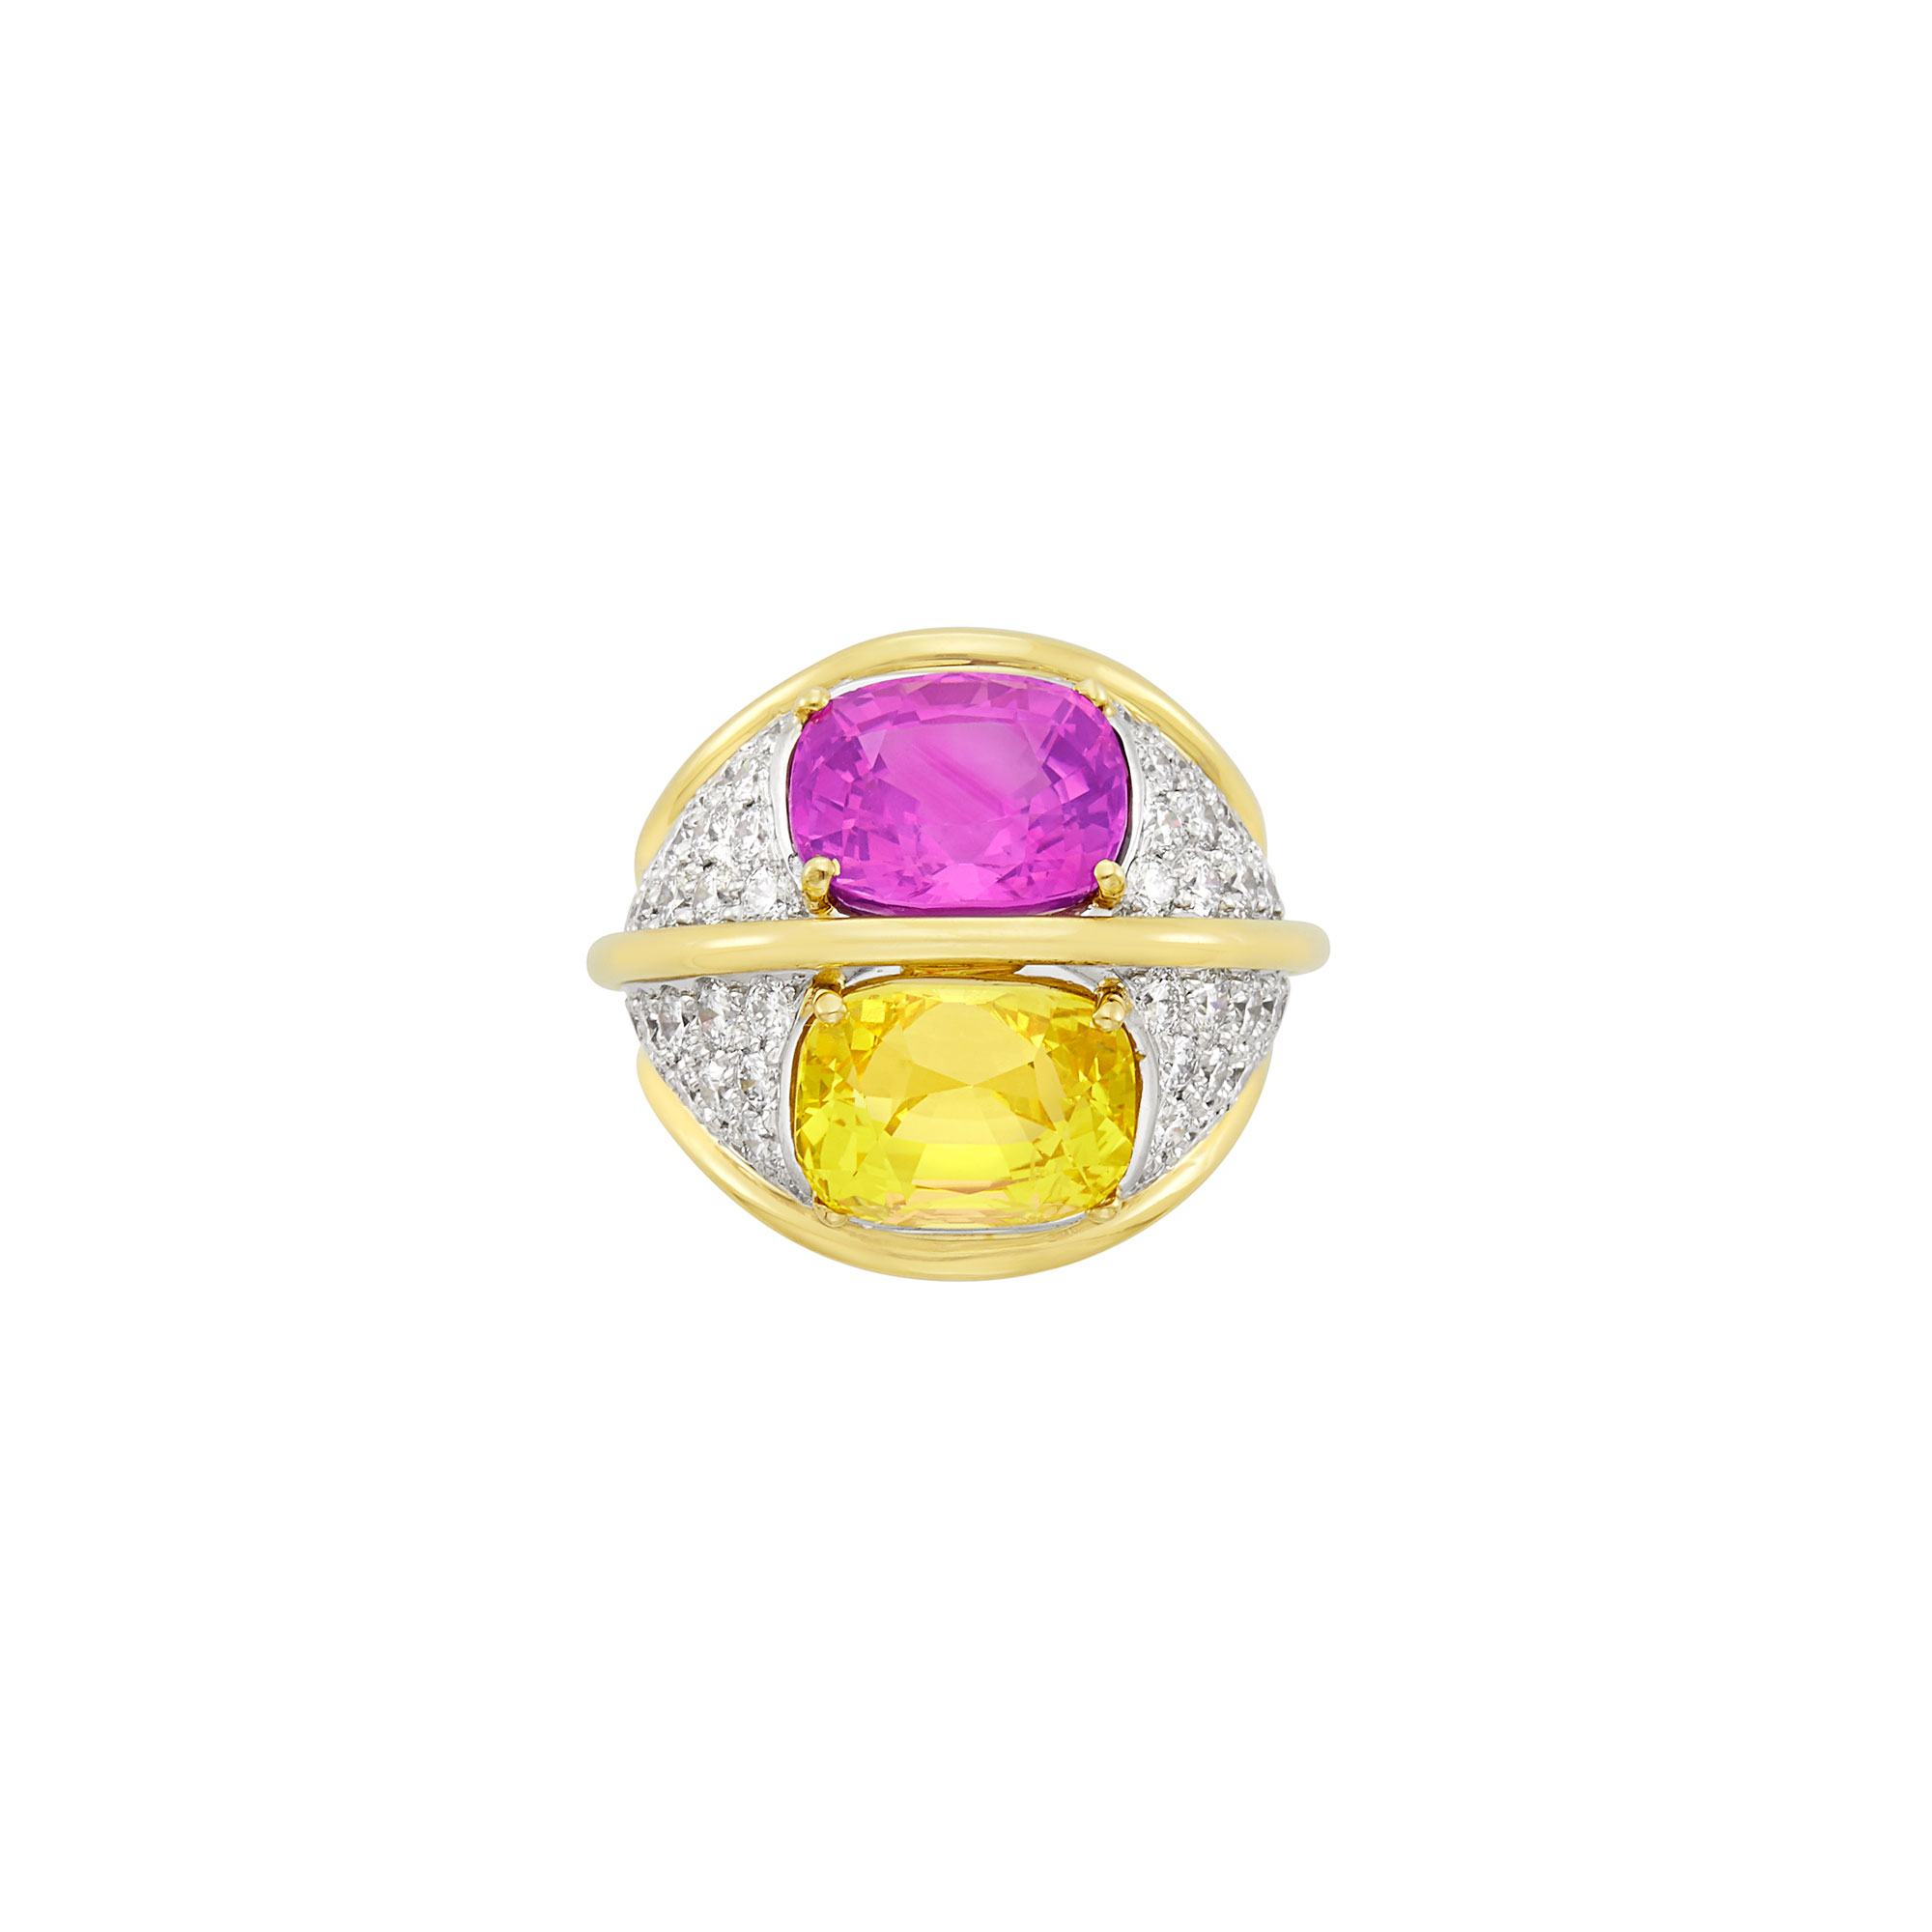 Lot image - Gold, Platinum, Yellow Sapphire, Pink Sapphire and Diamond Dome Ring, by Verdura